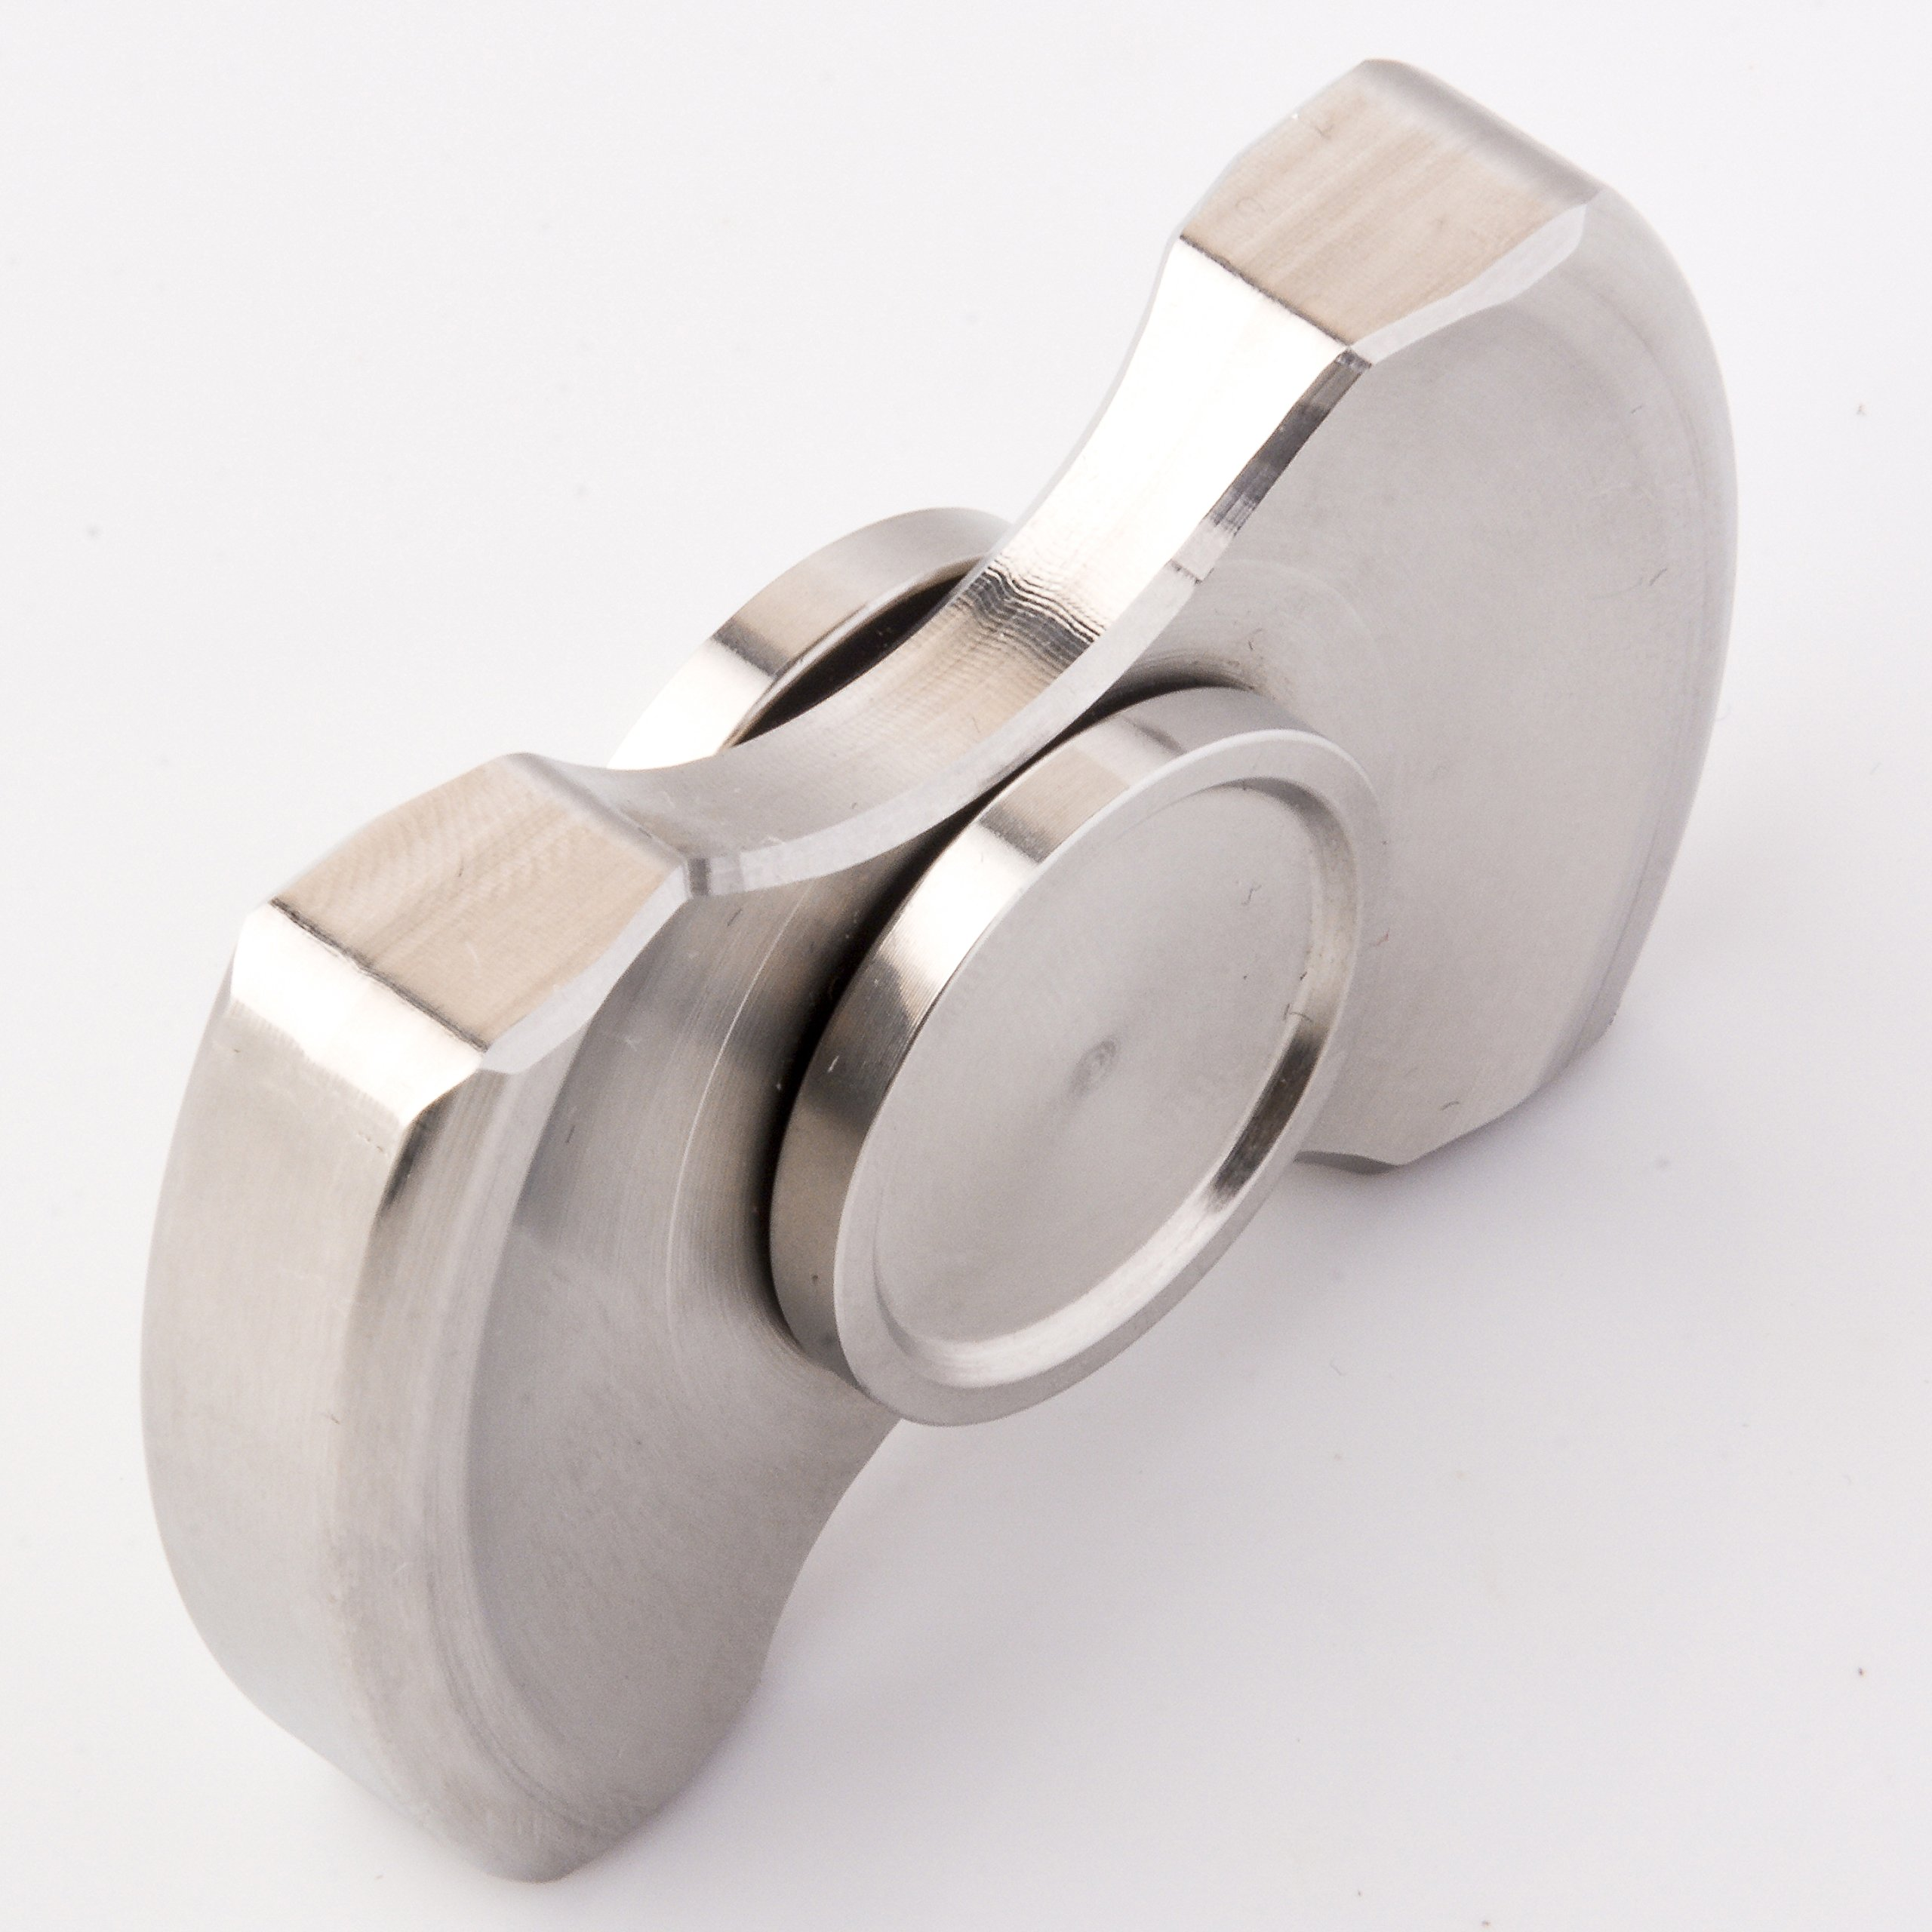 ILoveFidget Fidget Spinner, Best Stainless Steel Hand Spinner EDC Toy, R188 bearing spins up to 8 mins, relieve stress ADHD ADD Austism anxiety boredom, improve focus attention (Double Bar) by ILoveFidget (Image #3)